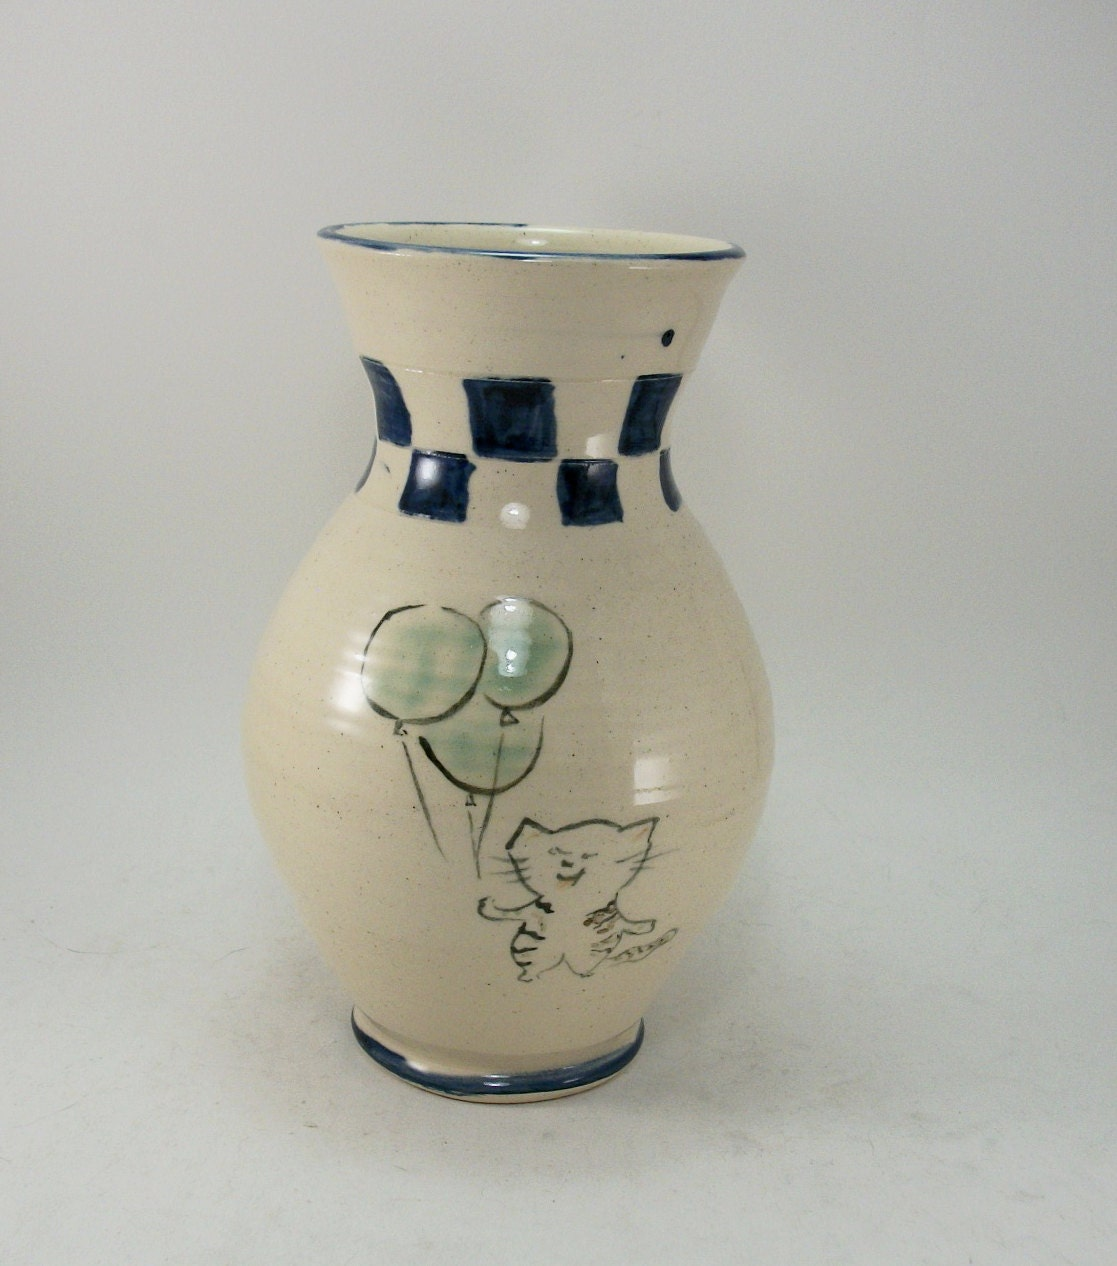 fun dog and cat vase